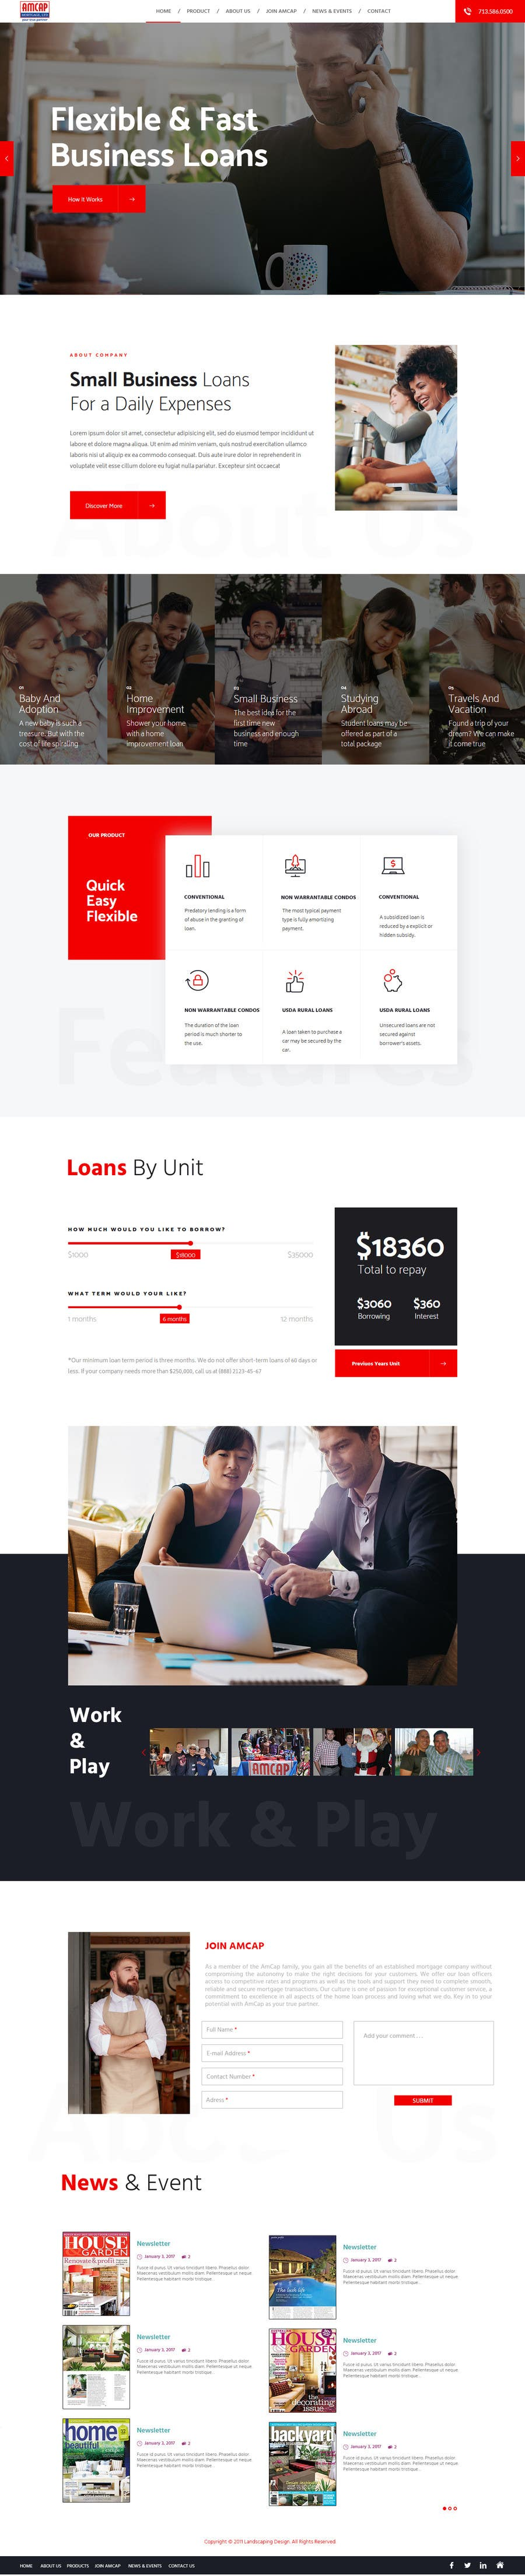 Proposition n°23 du concours Design a Website Mockup - HOMEPAGE ONLY - for a Mortgage Company